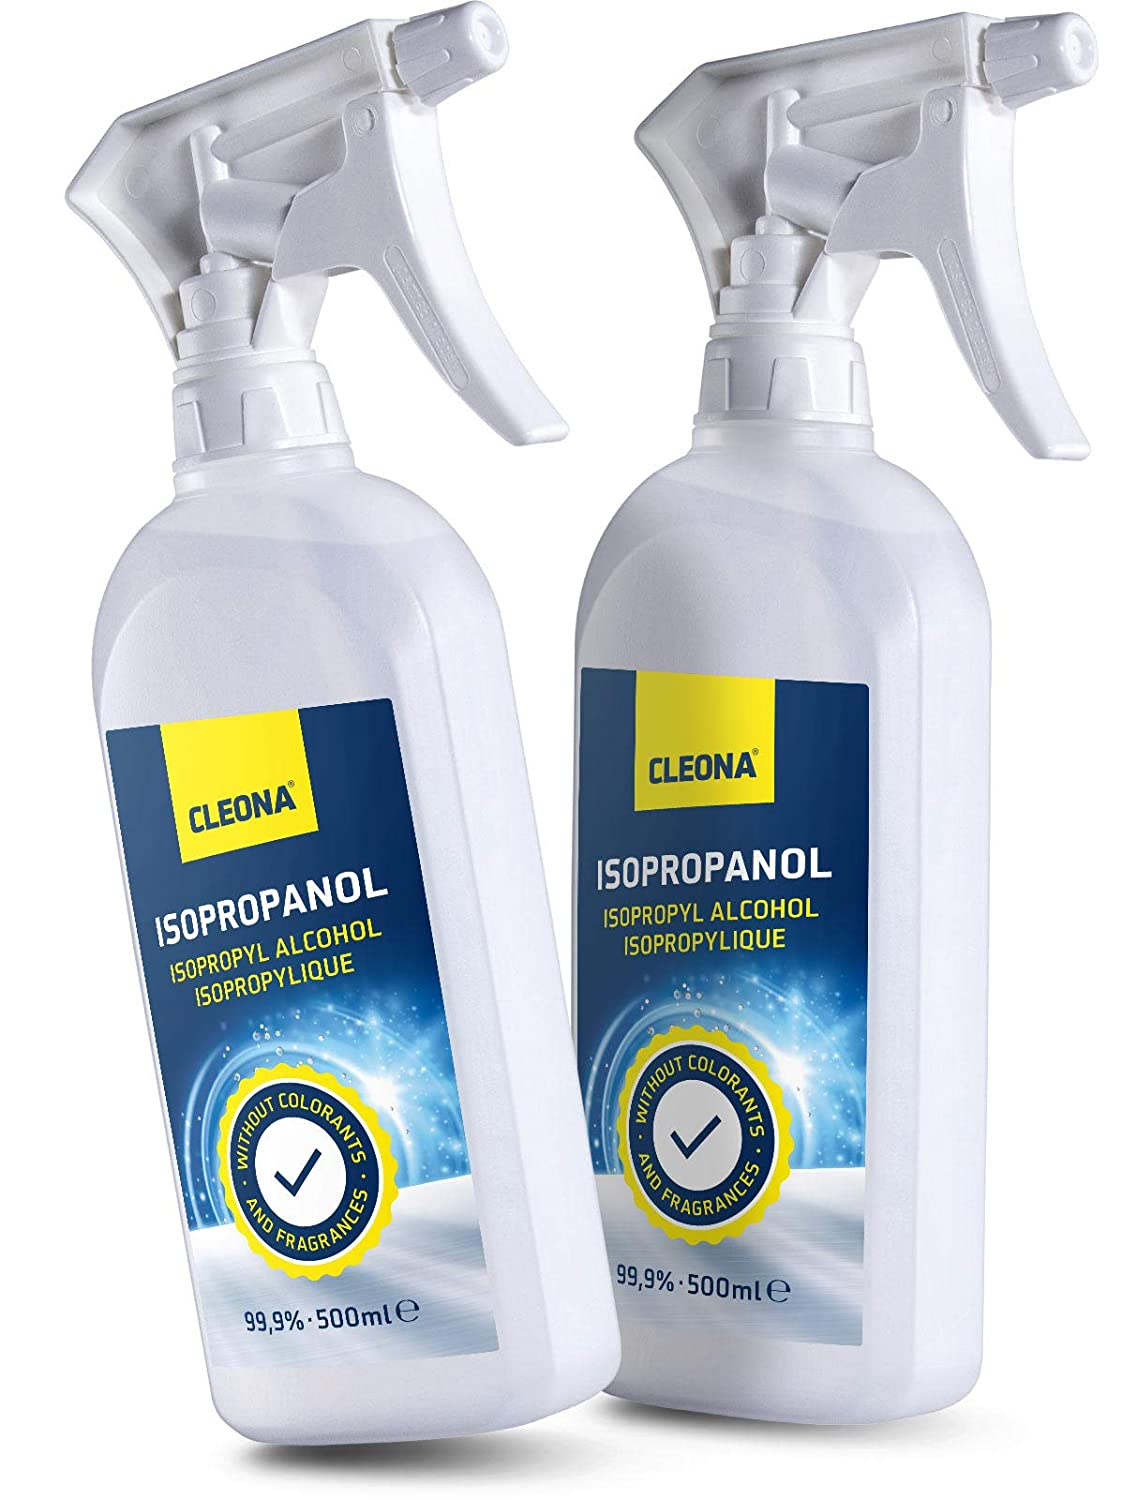 Isopropyl 99, 9% Rubbing Alcohol Isopropanol for Cleaning - 500ml IPA Multi-Use Cleaner Cleona Rubbing Alcohol